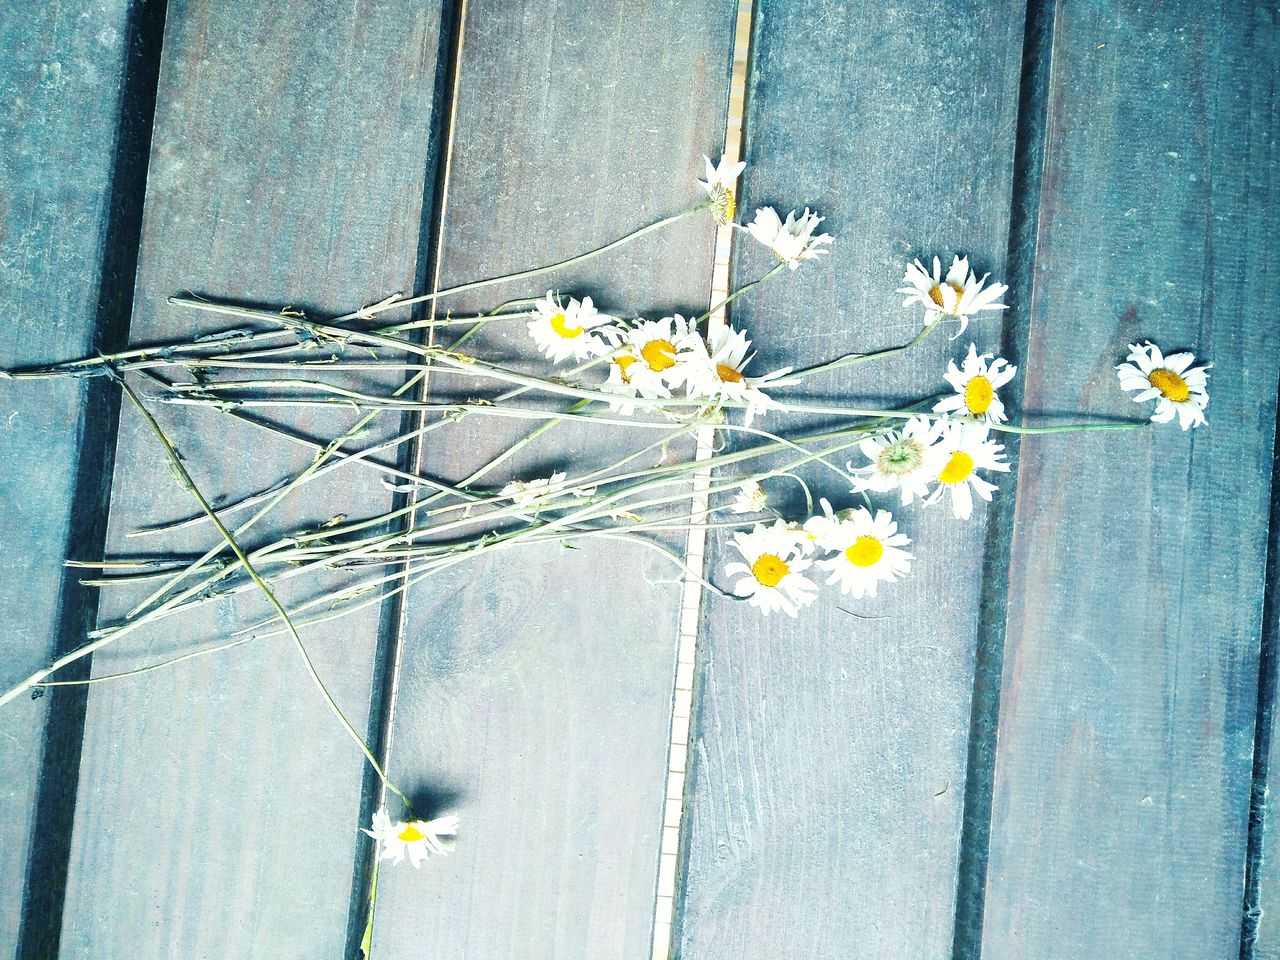 #dead #flowers #white #mess #wood #throw #ground #green #save #planet #daisy #nature #vs #people #potd #like Strange